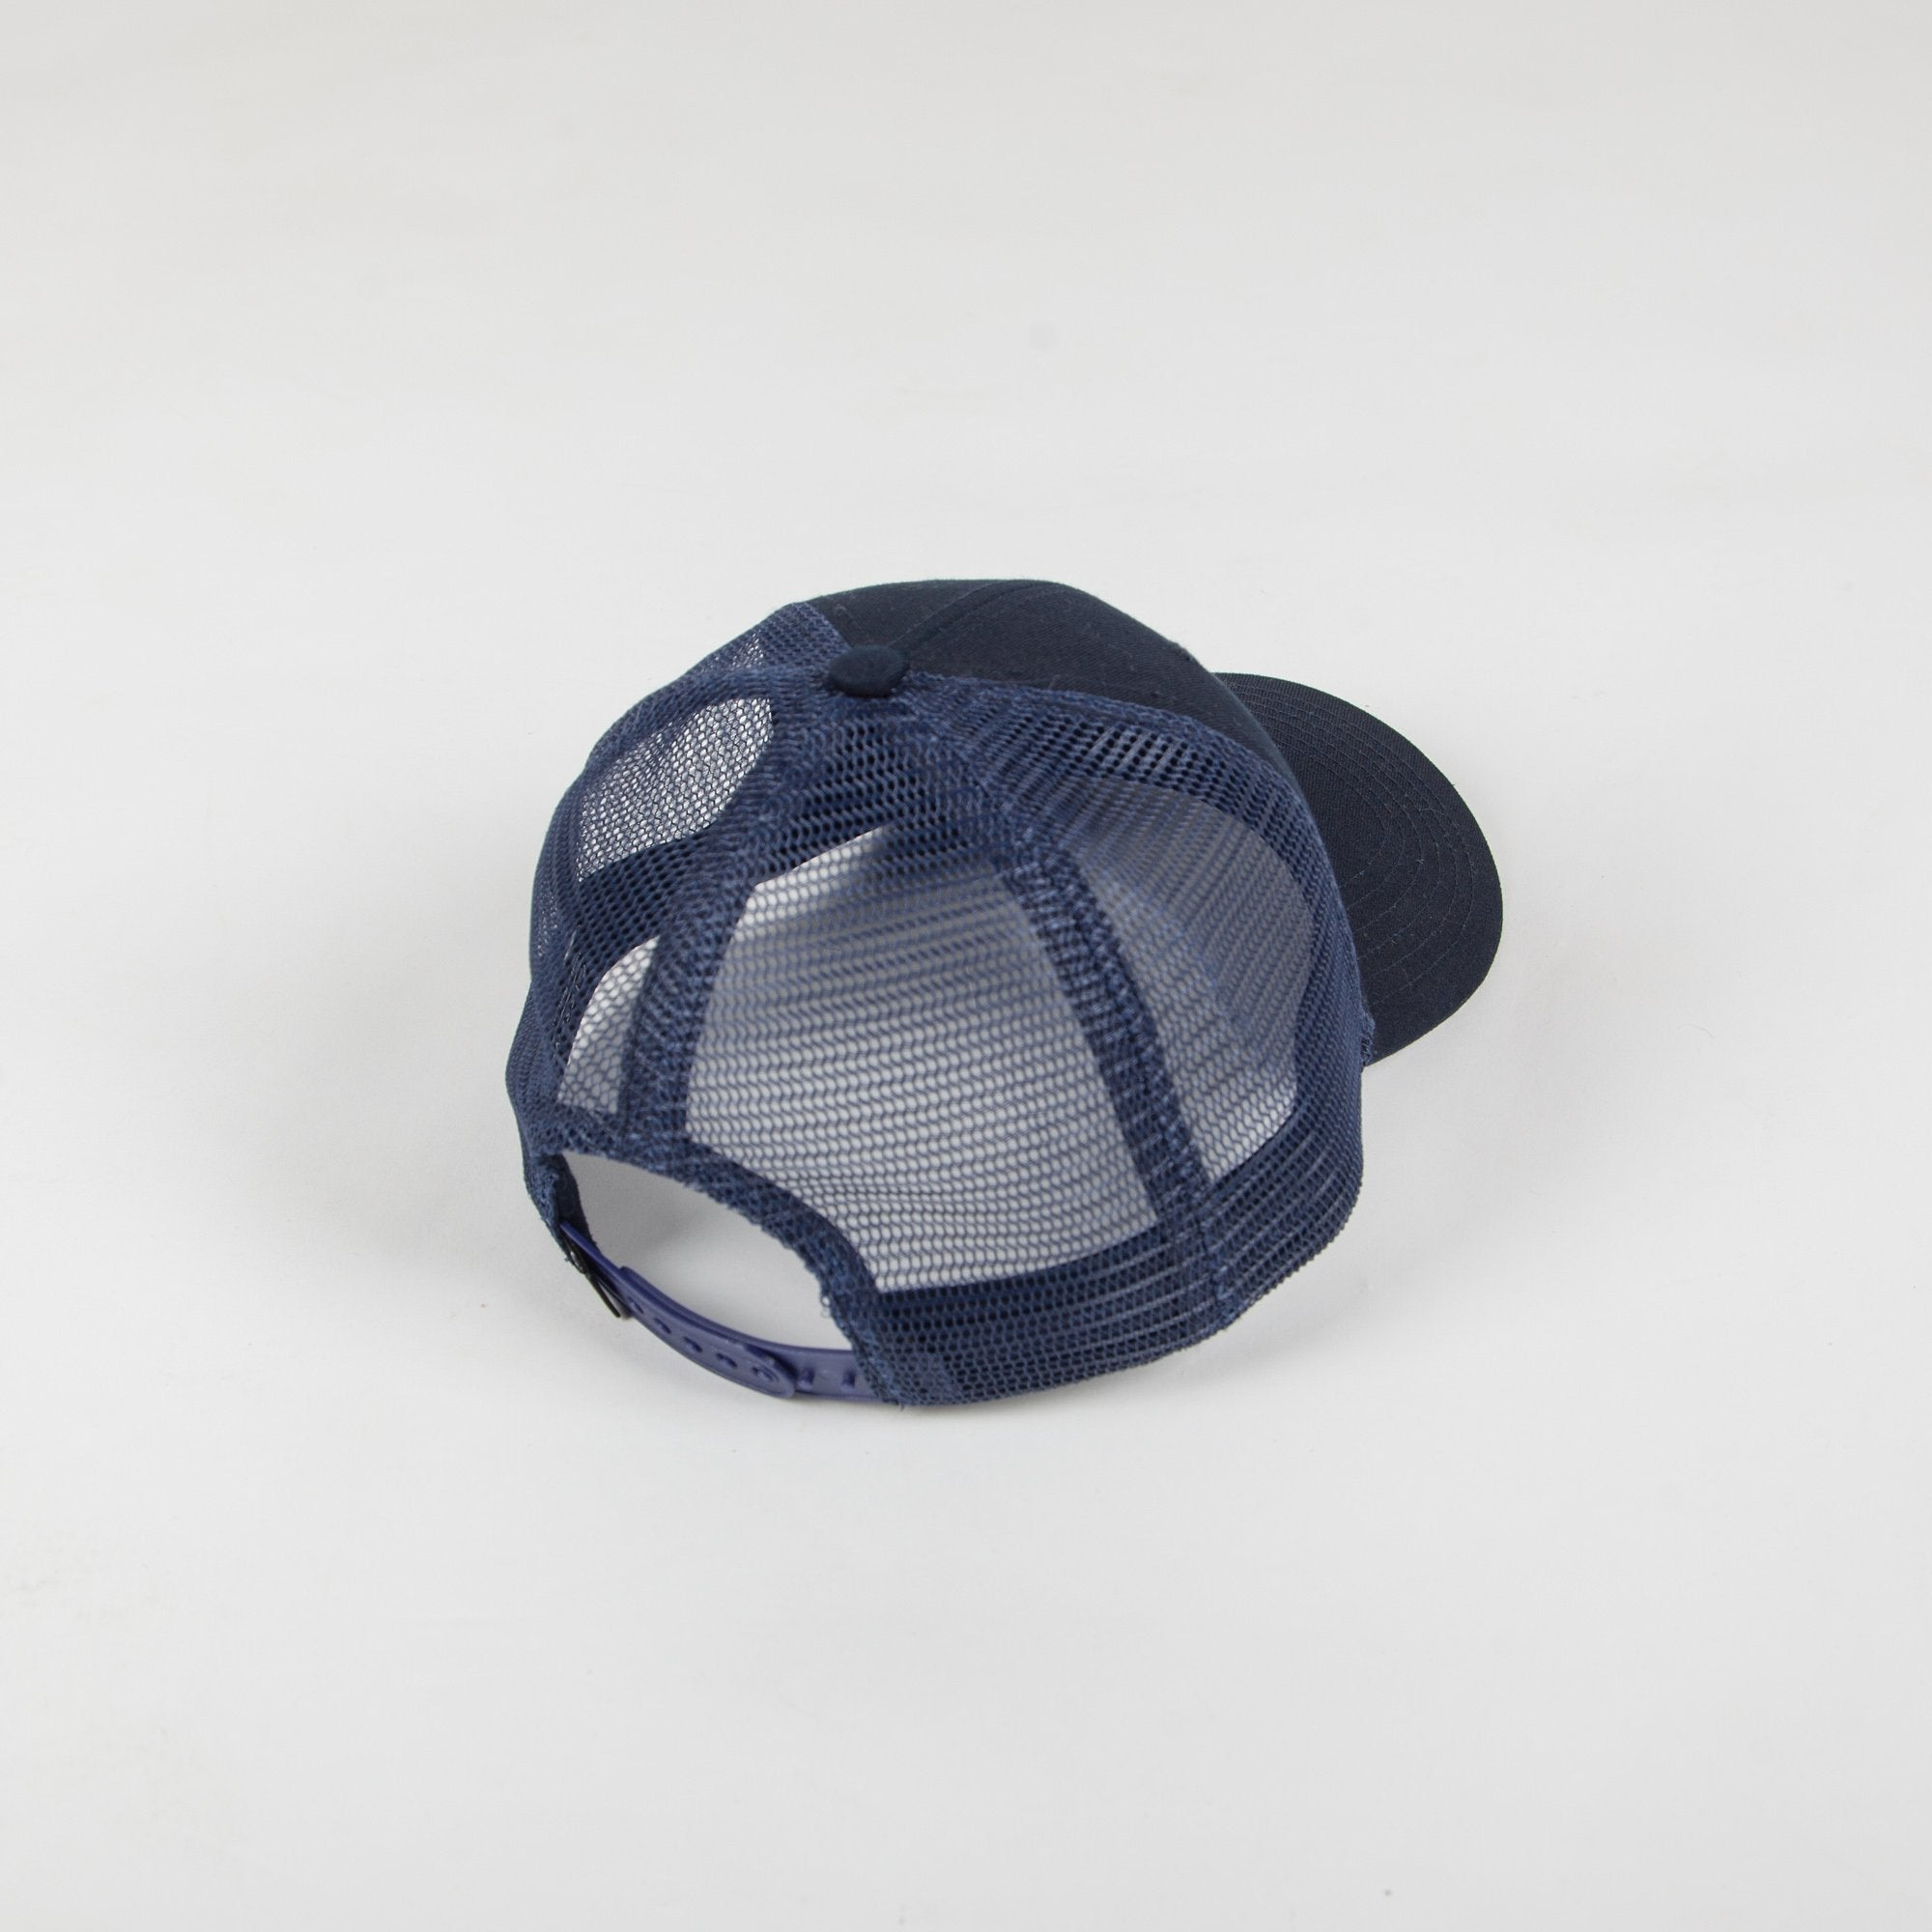 Kombi Cap - Blue Nights Navy image 4